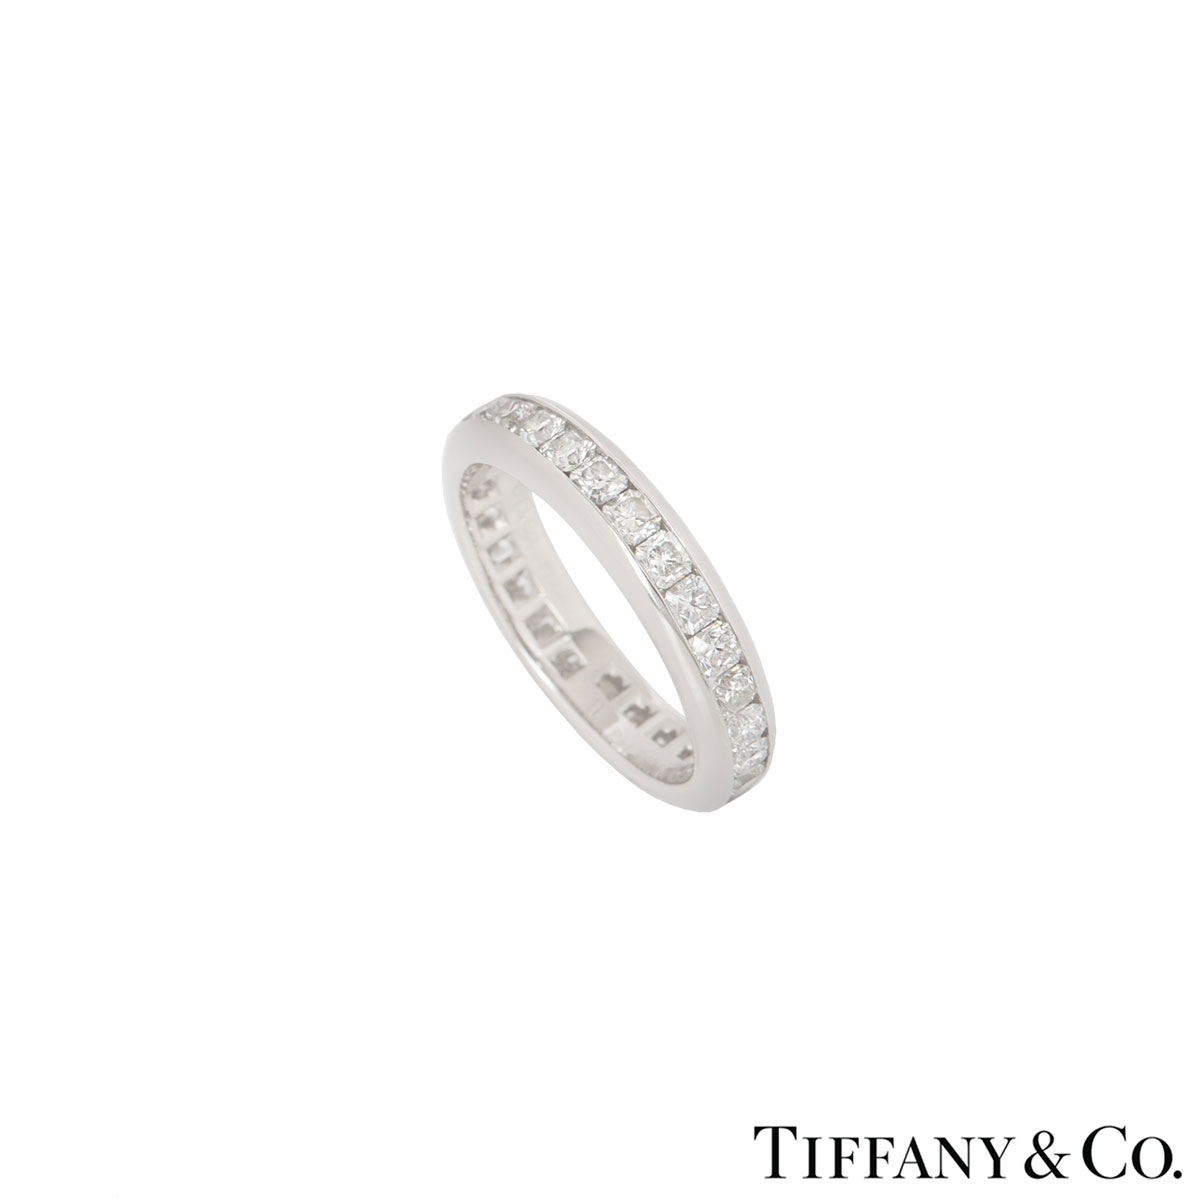 120a42d54 Tiffany & Co Platinum Lucida Diamond Full Eternity Ring 1.74ct